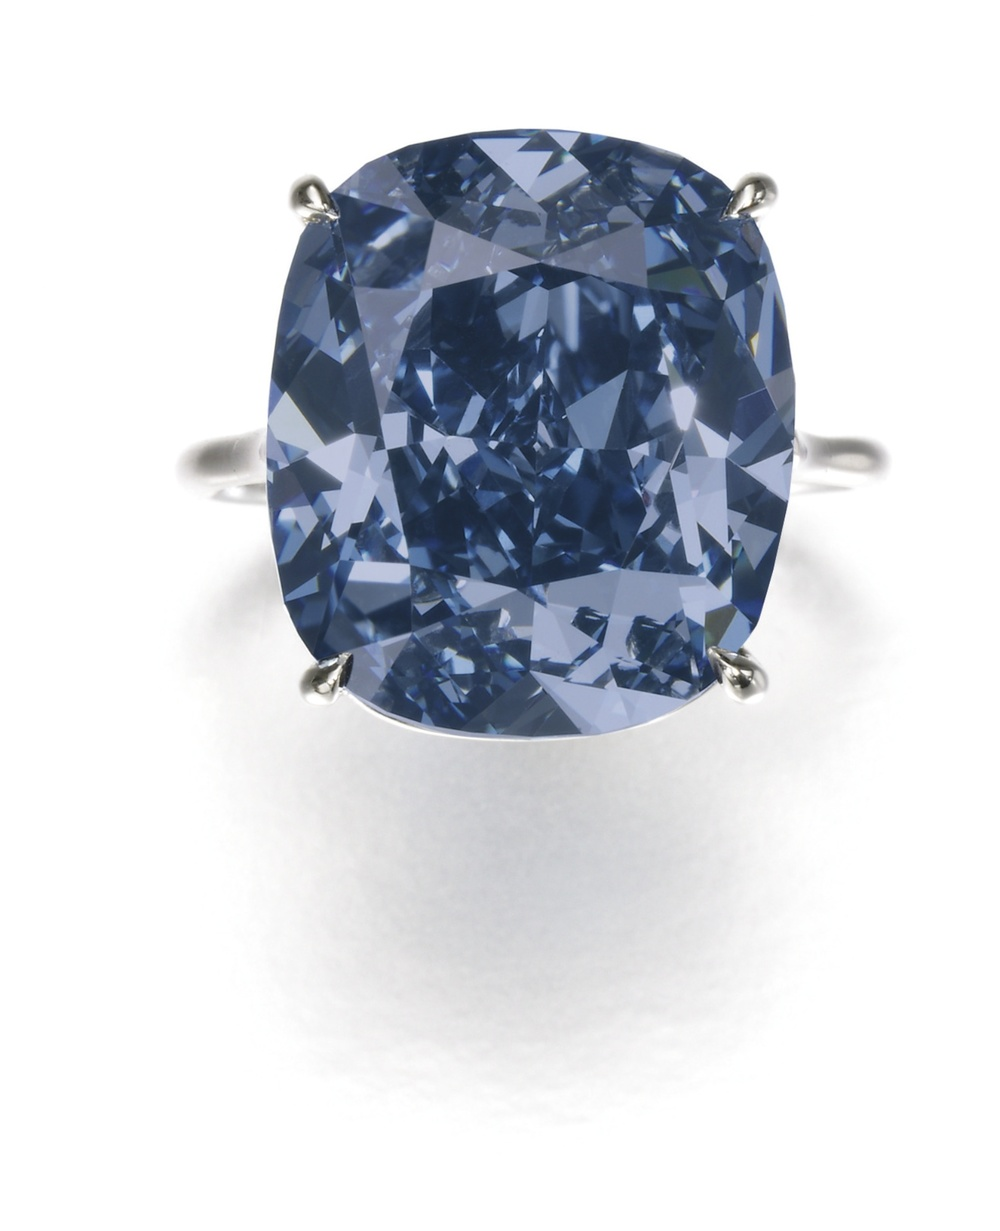 The Blue Moon Diamond - Image courtesy of Sotheby's